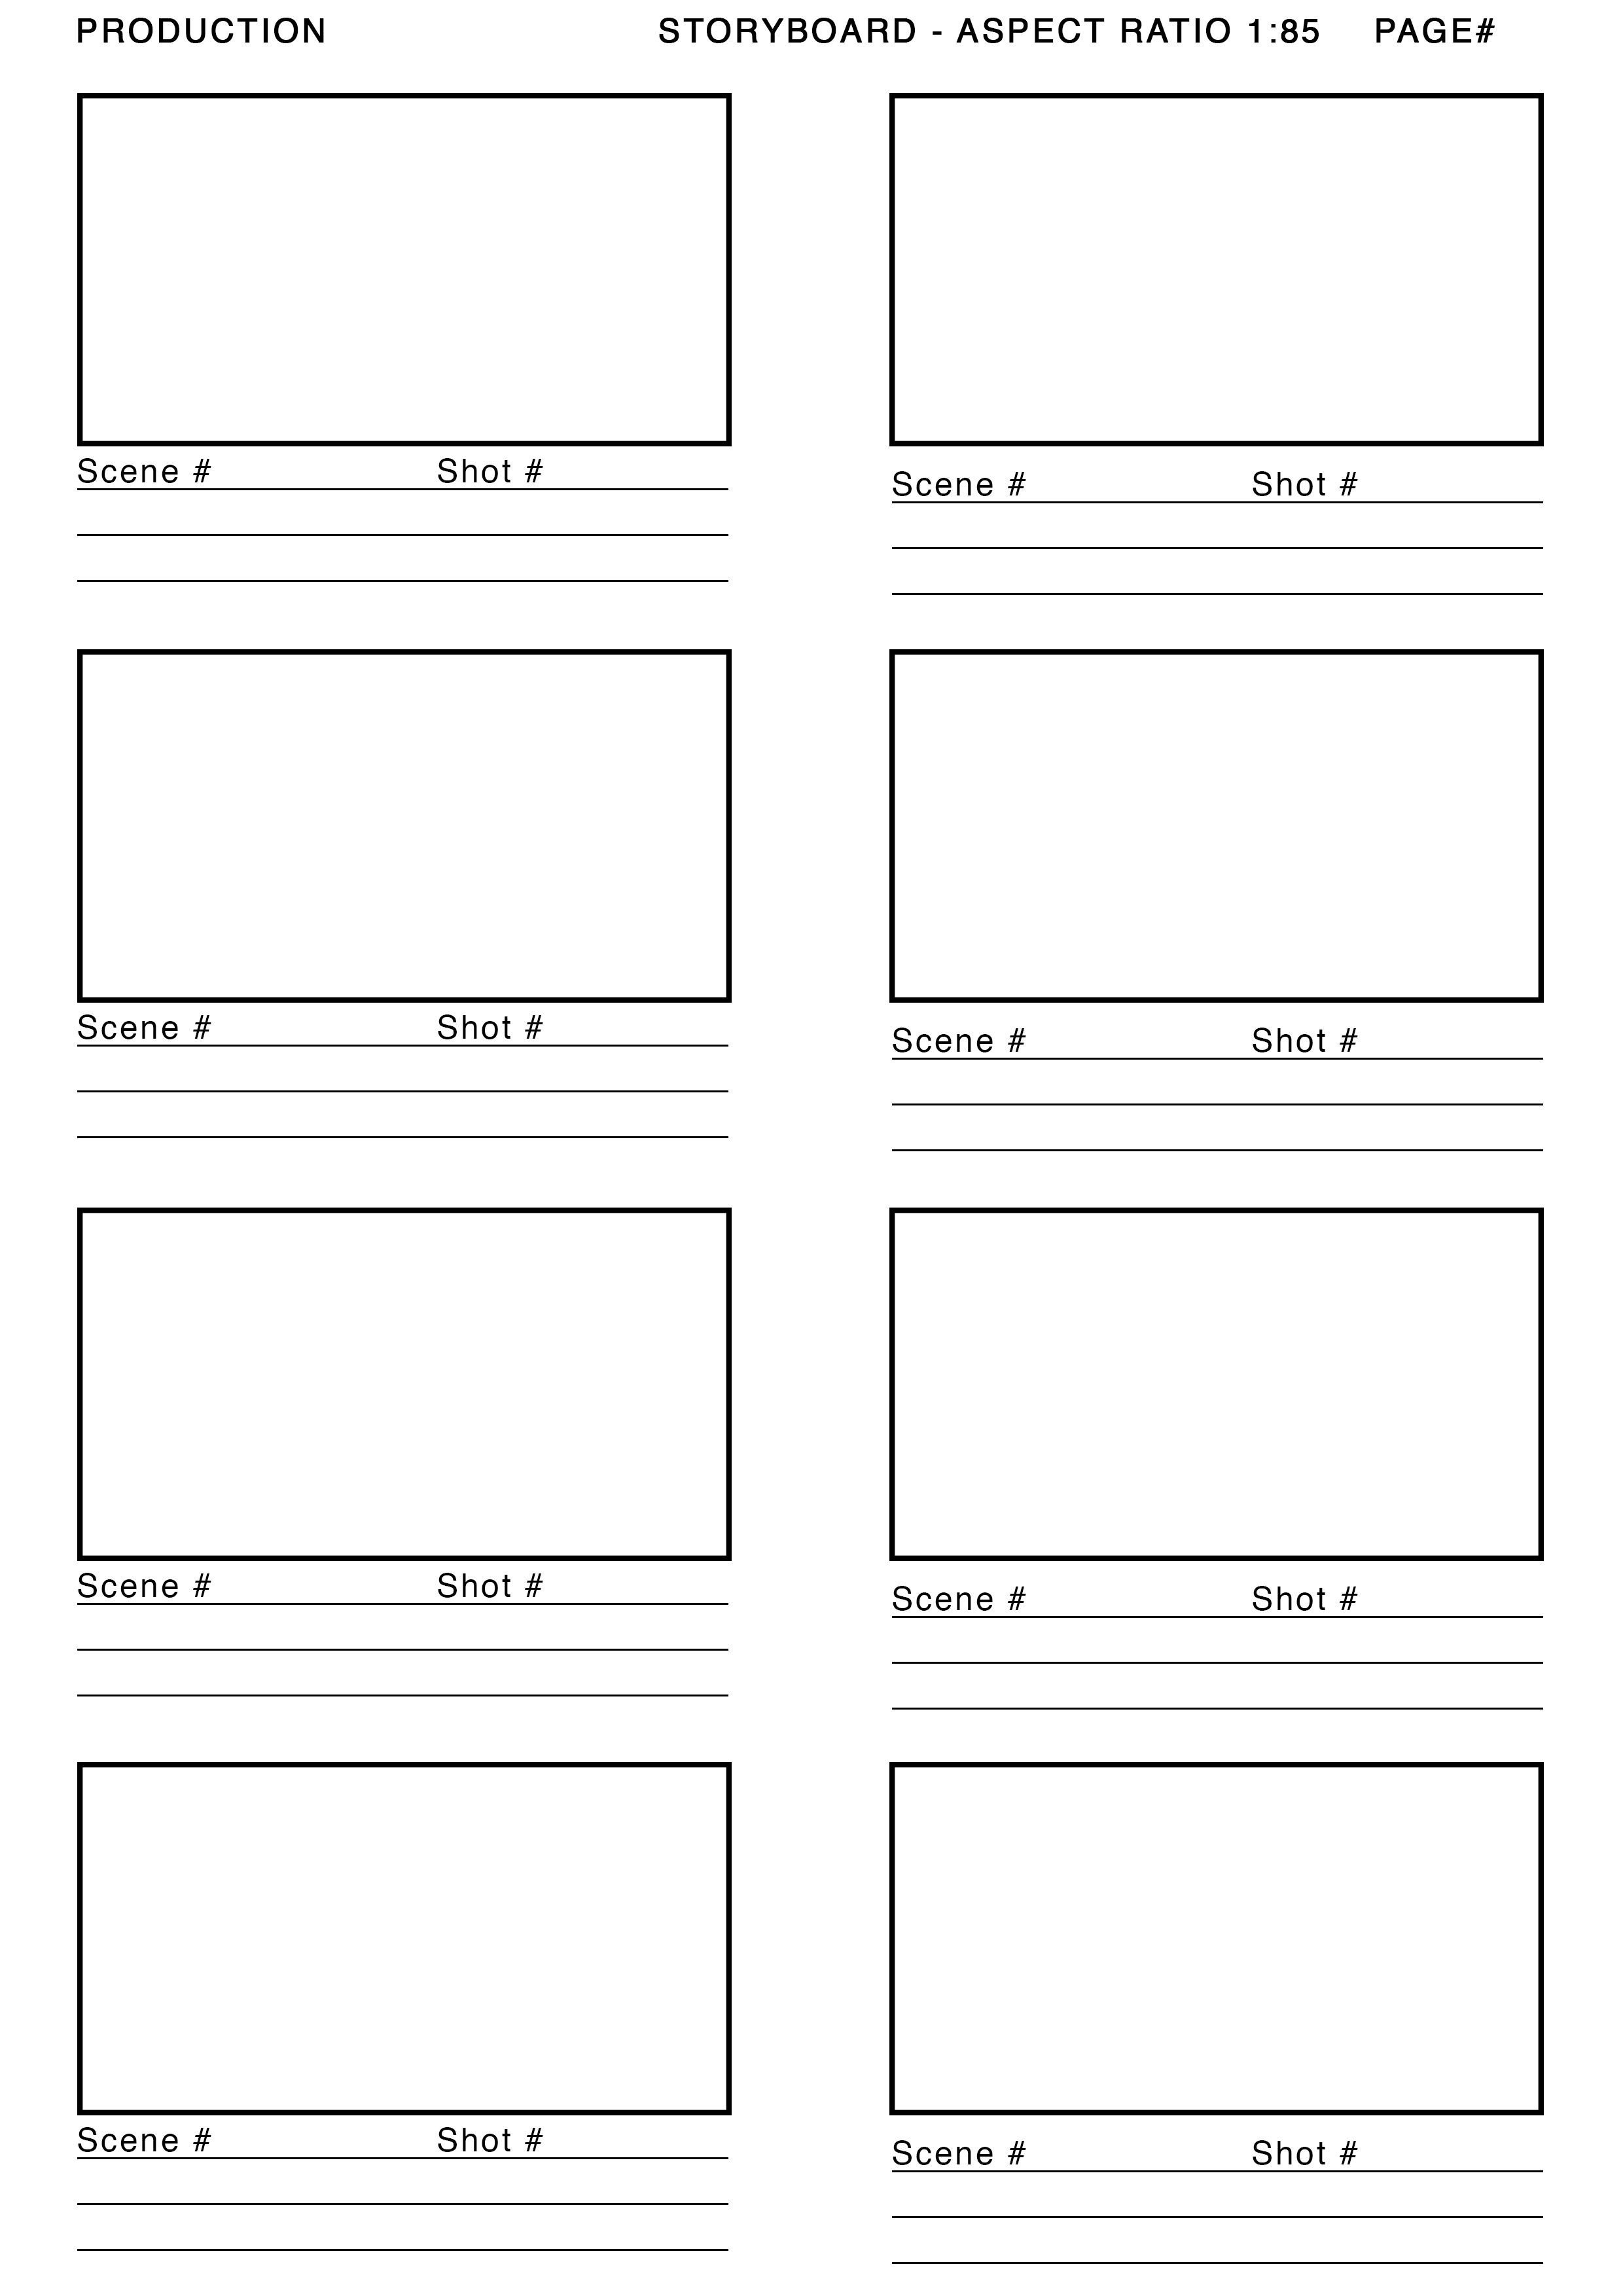 Film Storyboard Template Pdf 1 85 aspect Ratio Storyboard Template Google Search